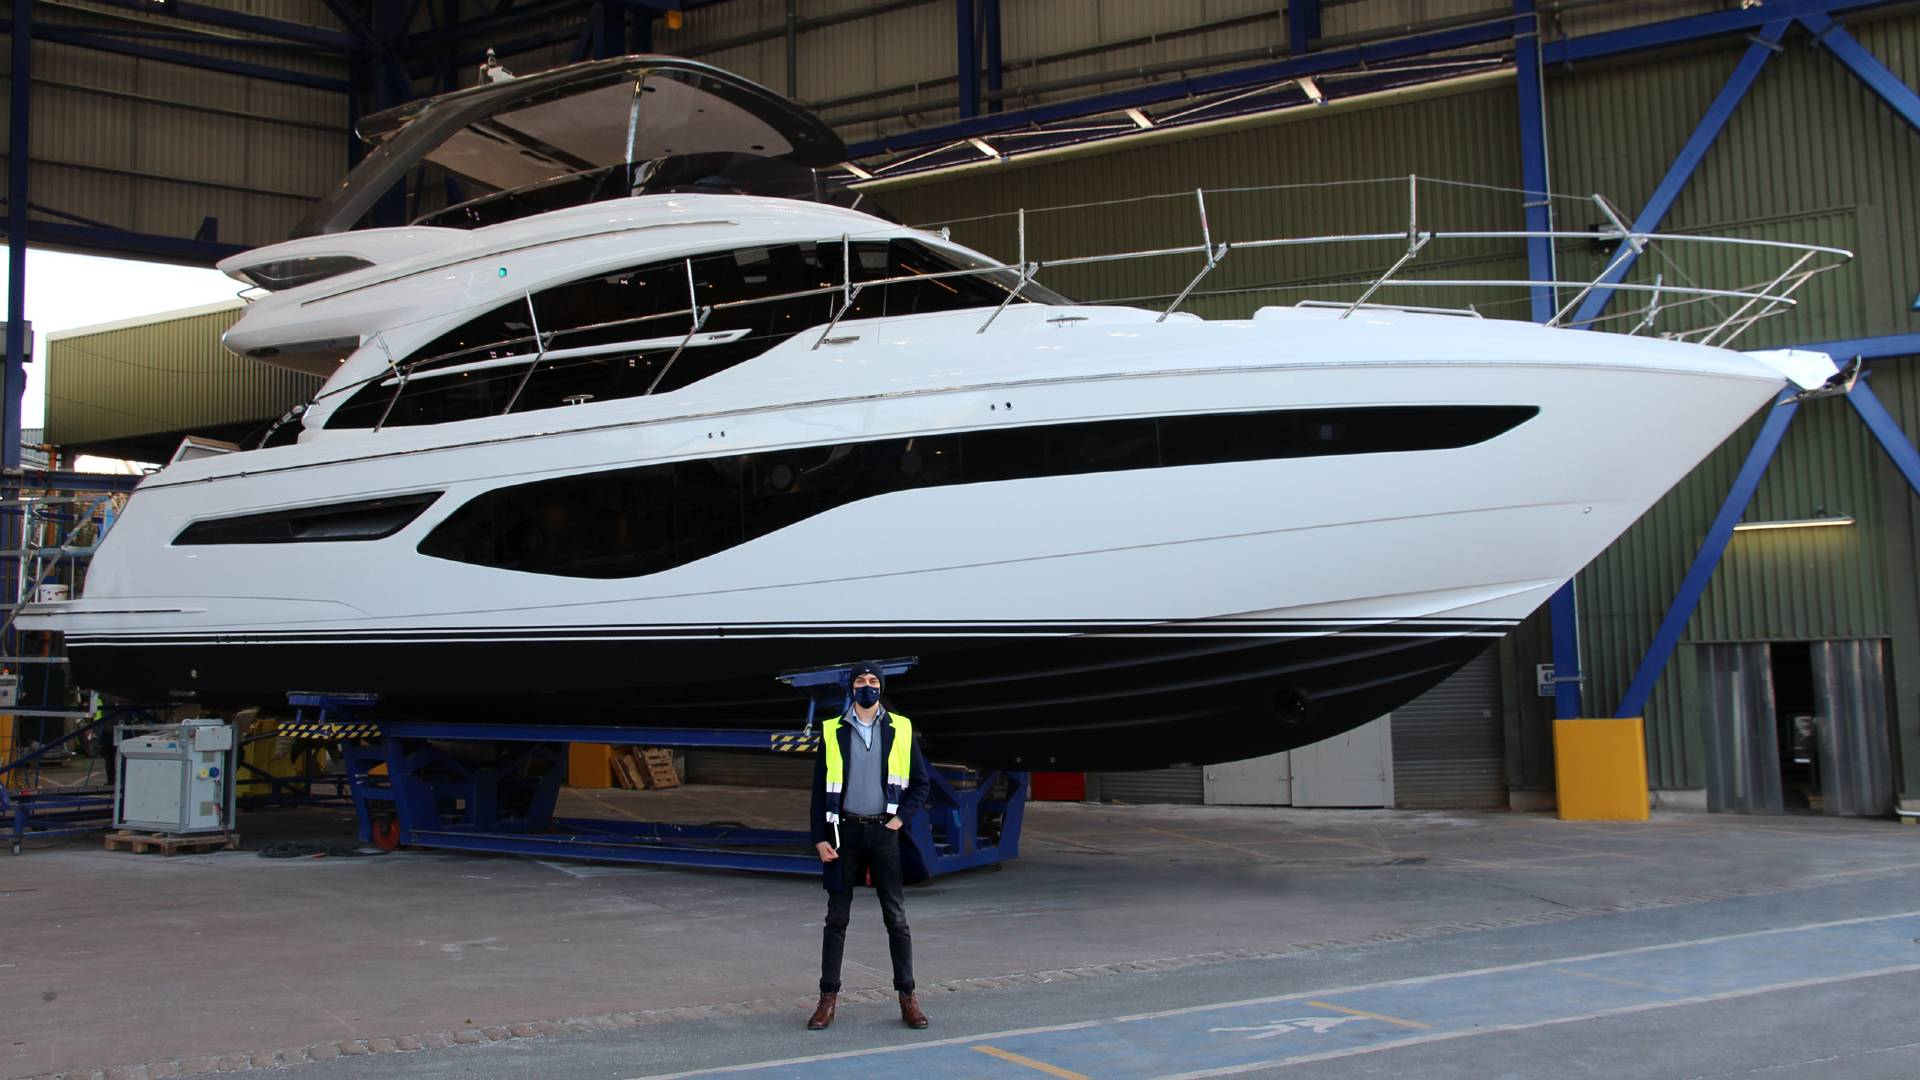 Toby Thwaites stood in front of a yacht